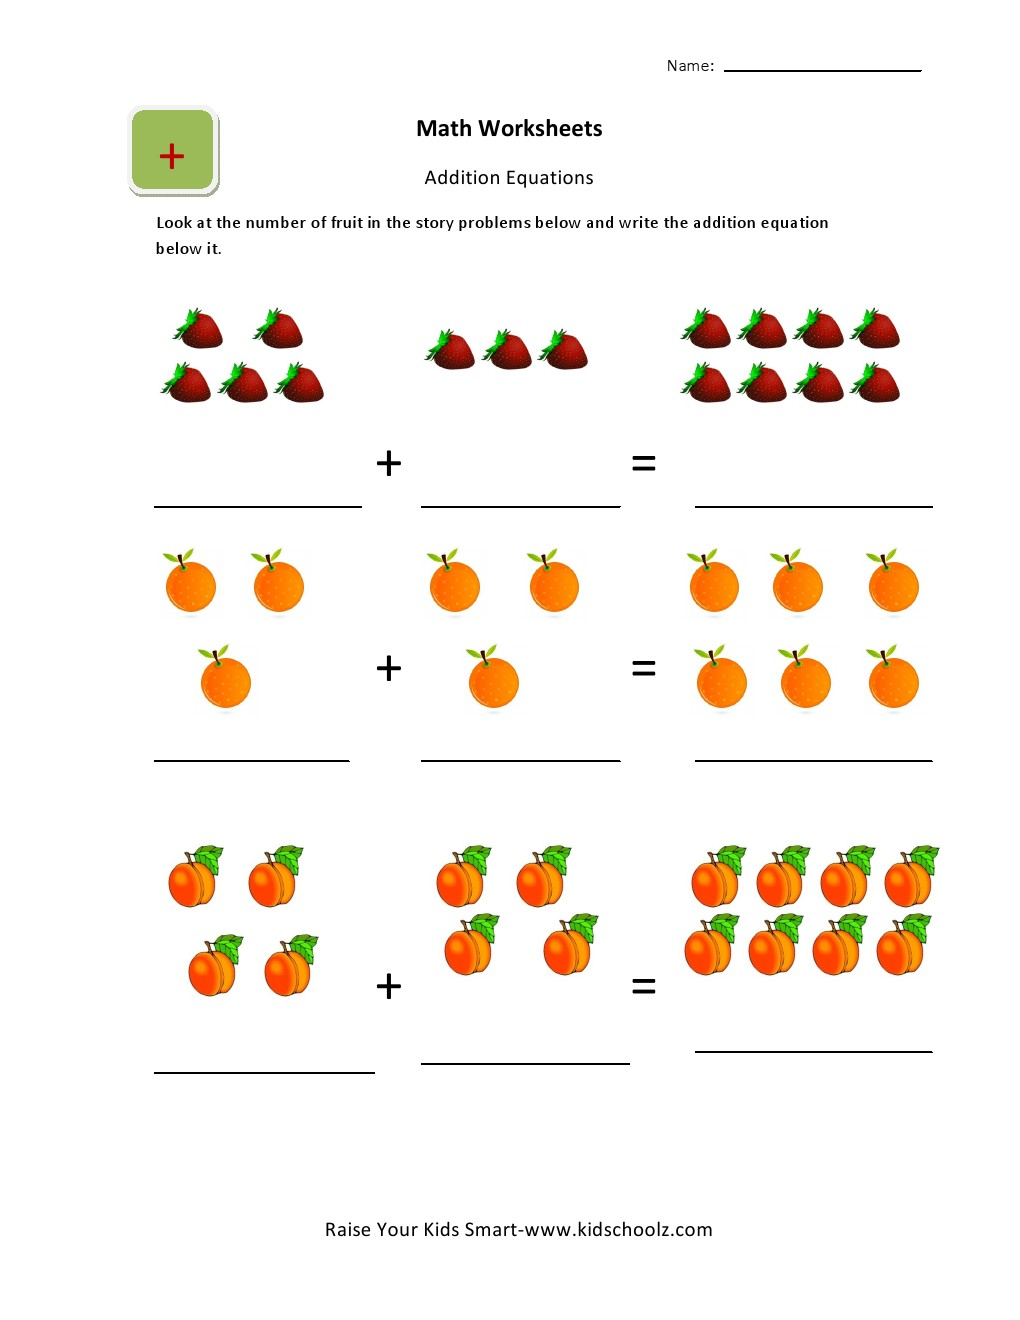 hight resolution of UKG-Basic Picture Addition Worksheets for Kids - Kidschoolz